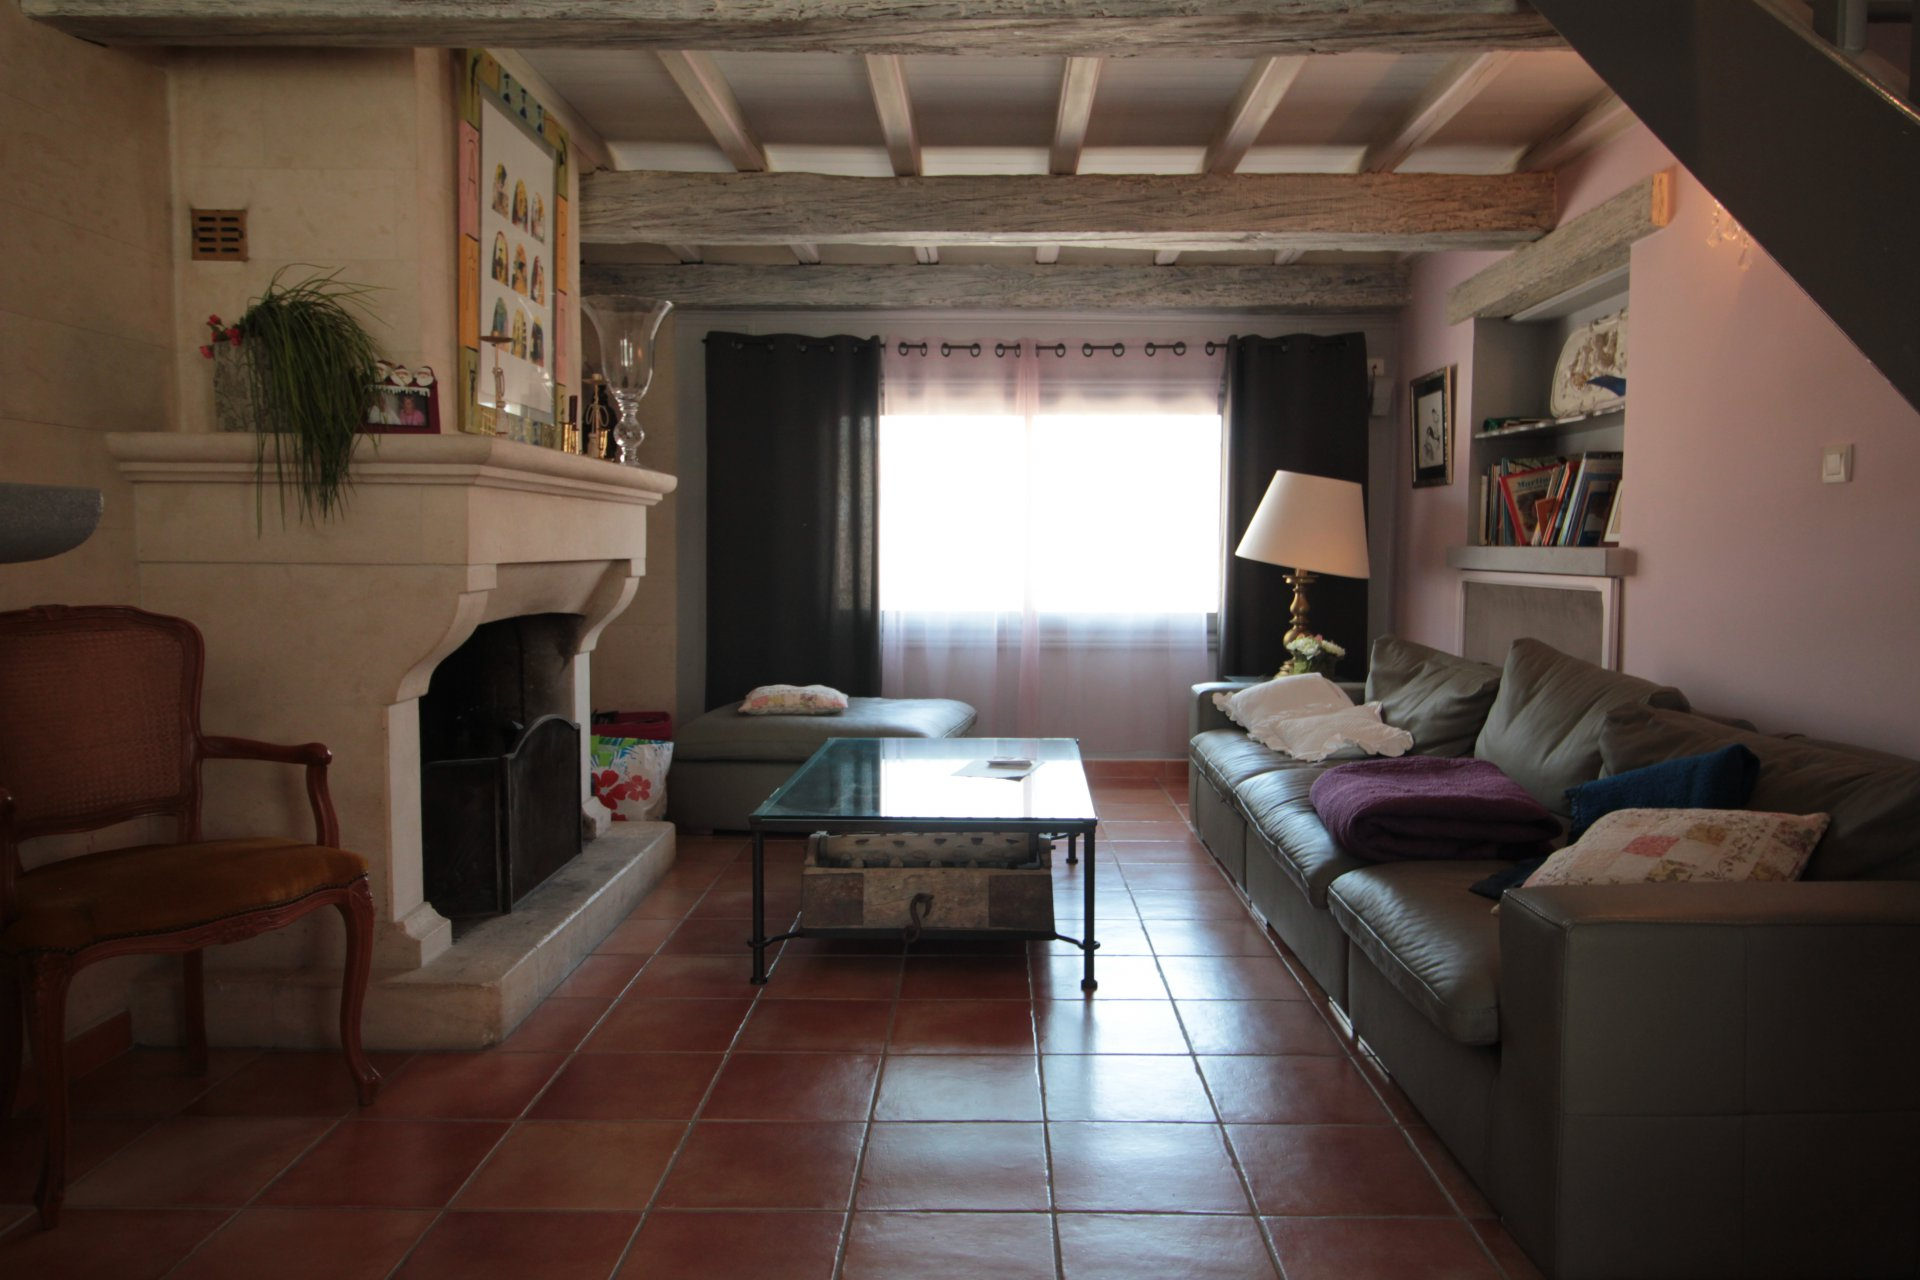 House for sale close to Arles city center